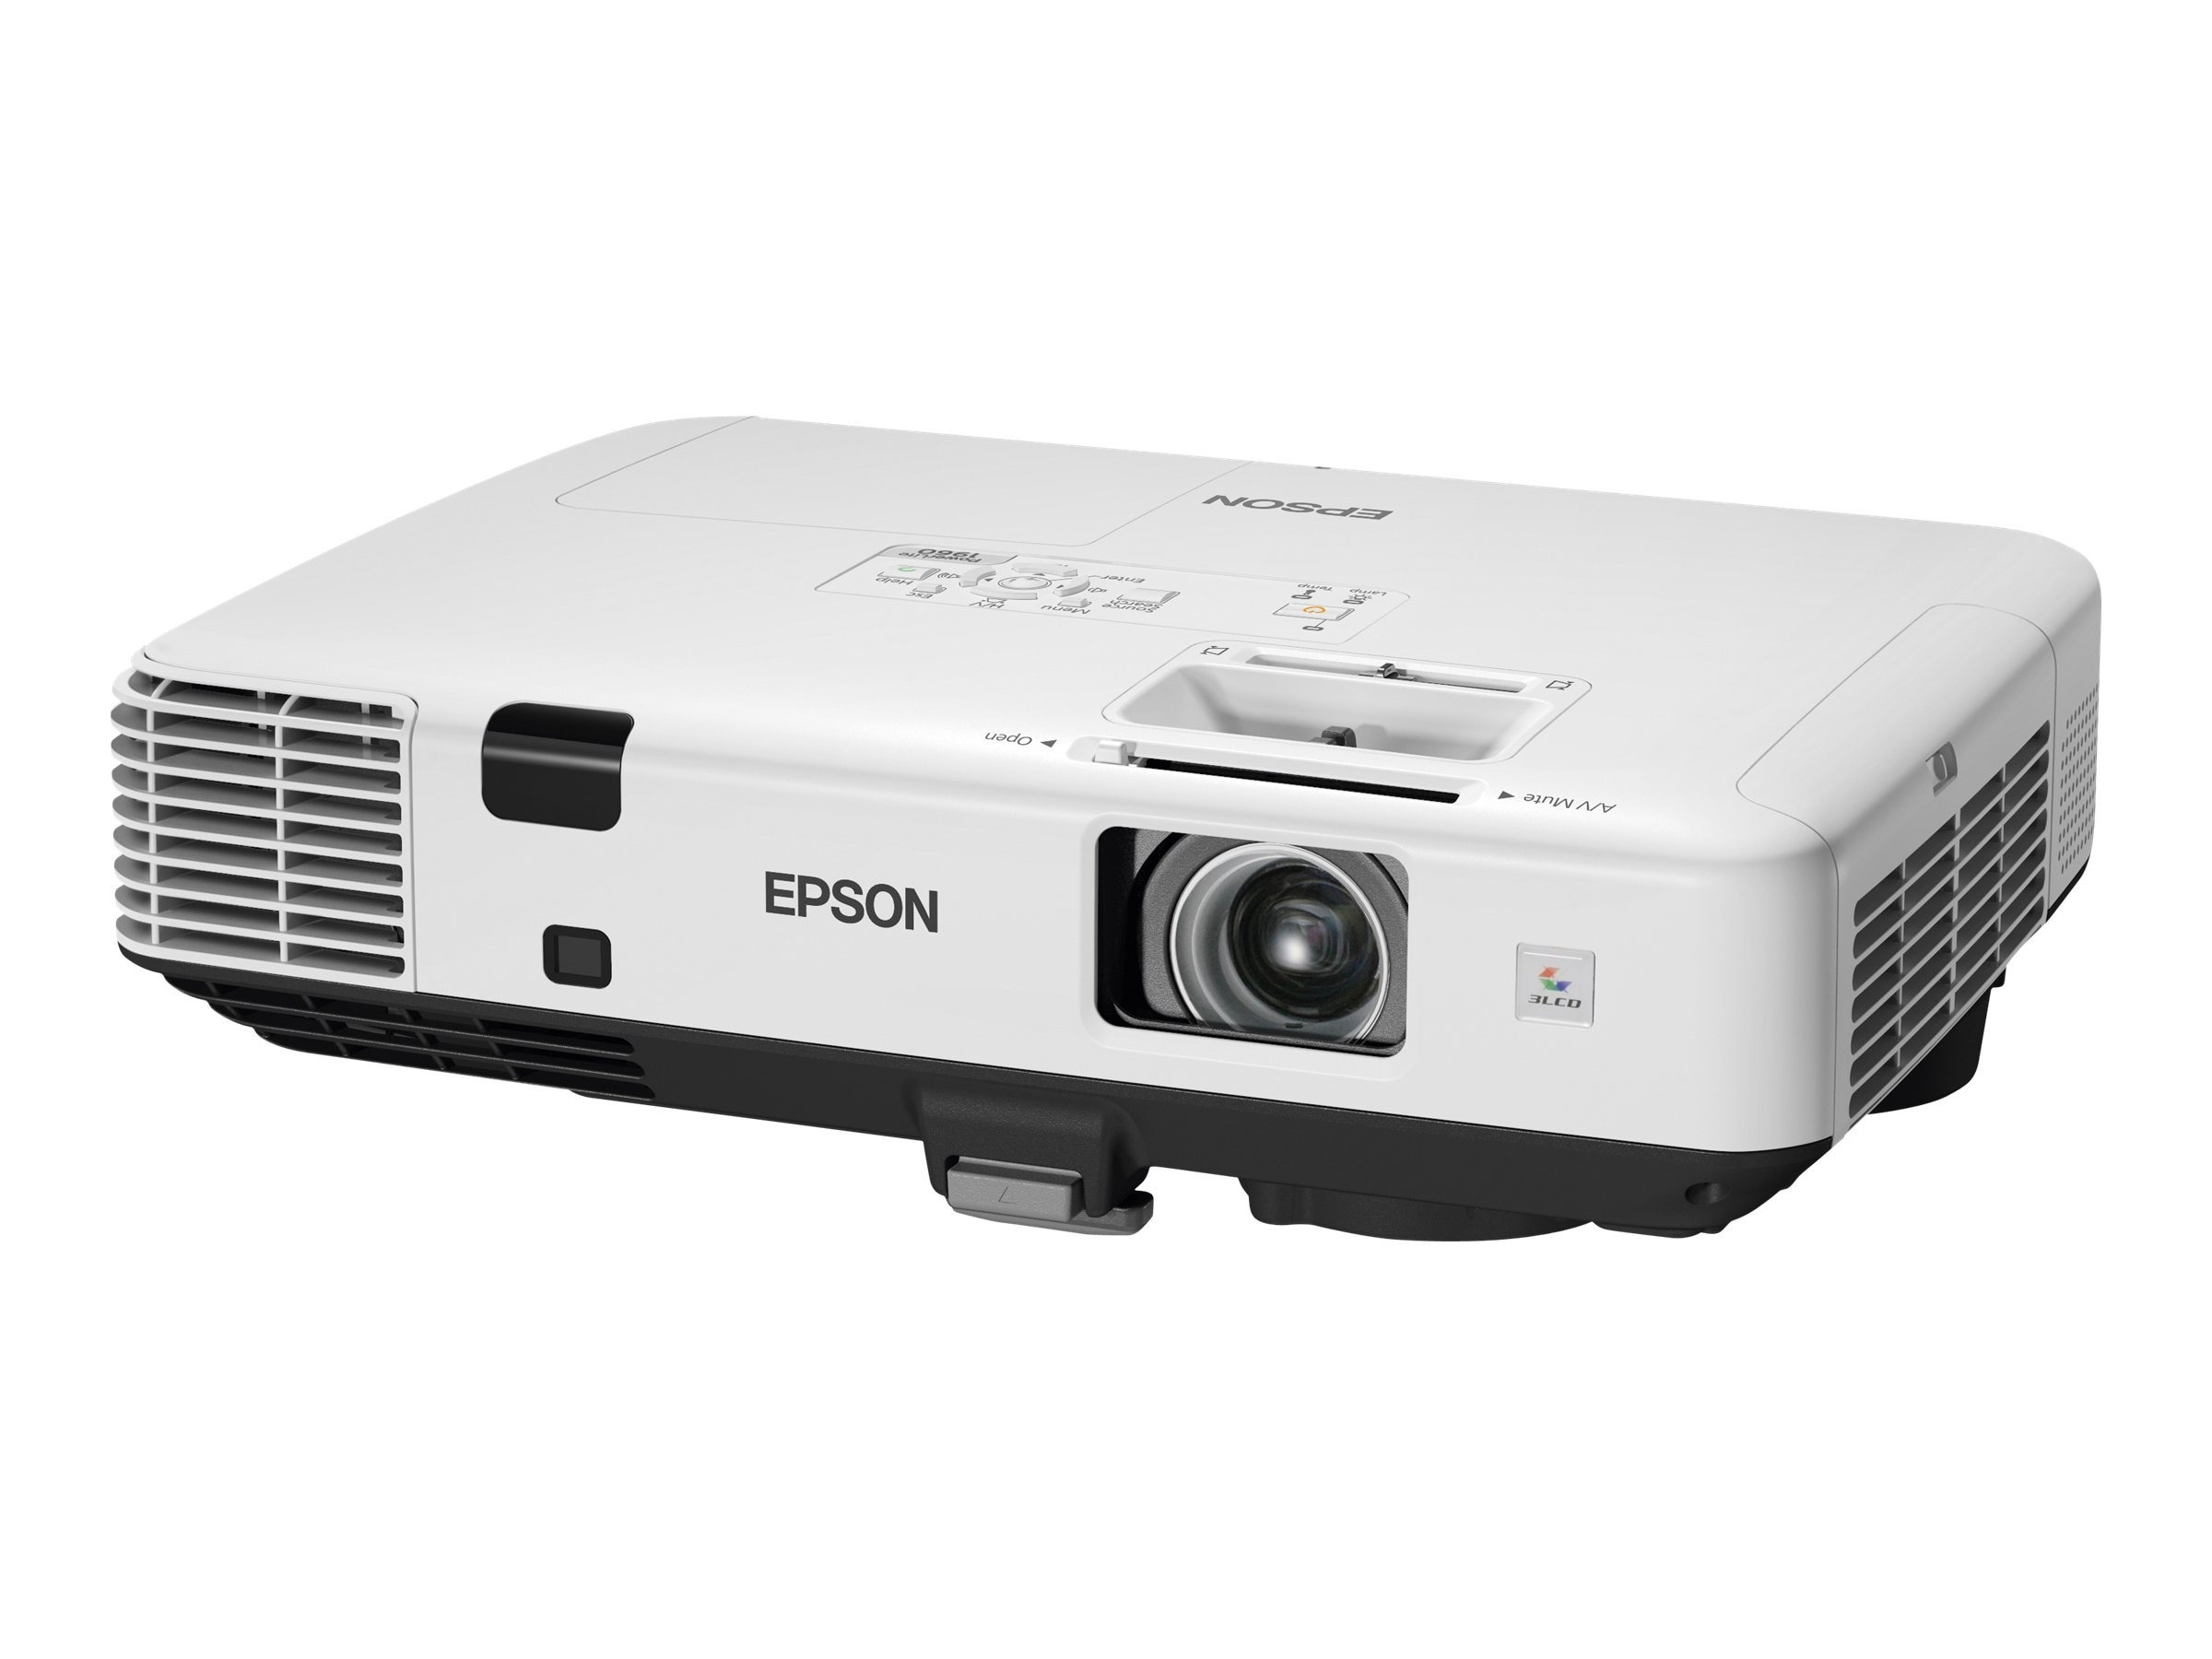 Epson Powerlite 1960 XGA 3LCD Projector, 5000 Lumens, White, V11H473020, 13881695, Projectors